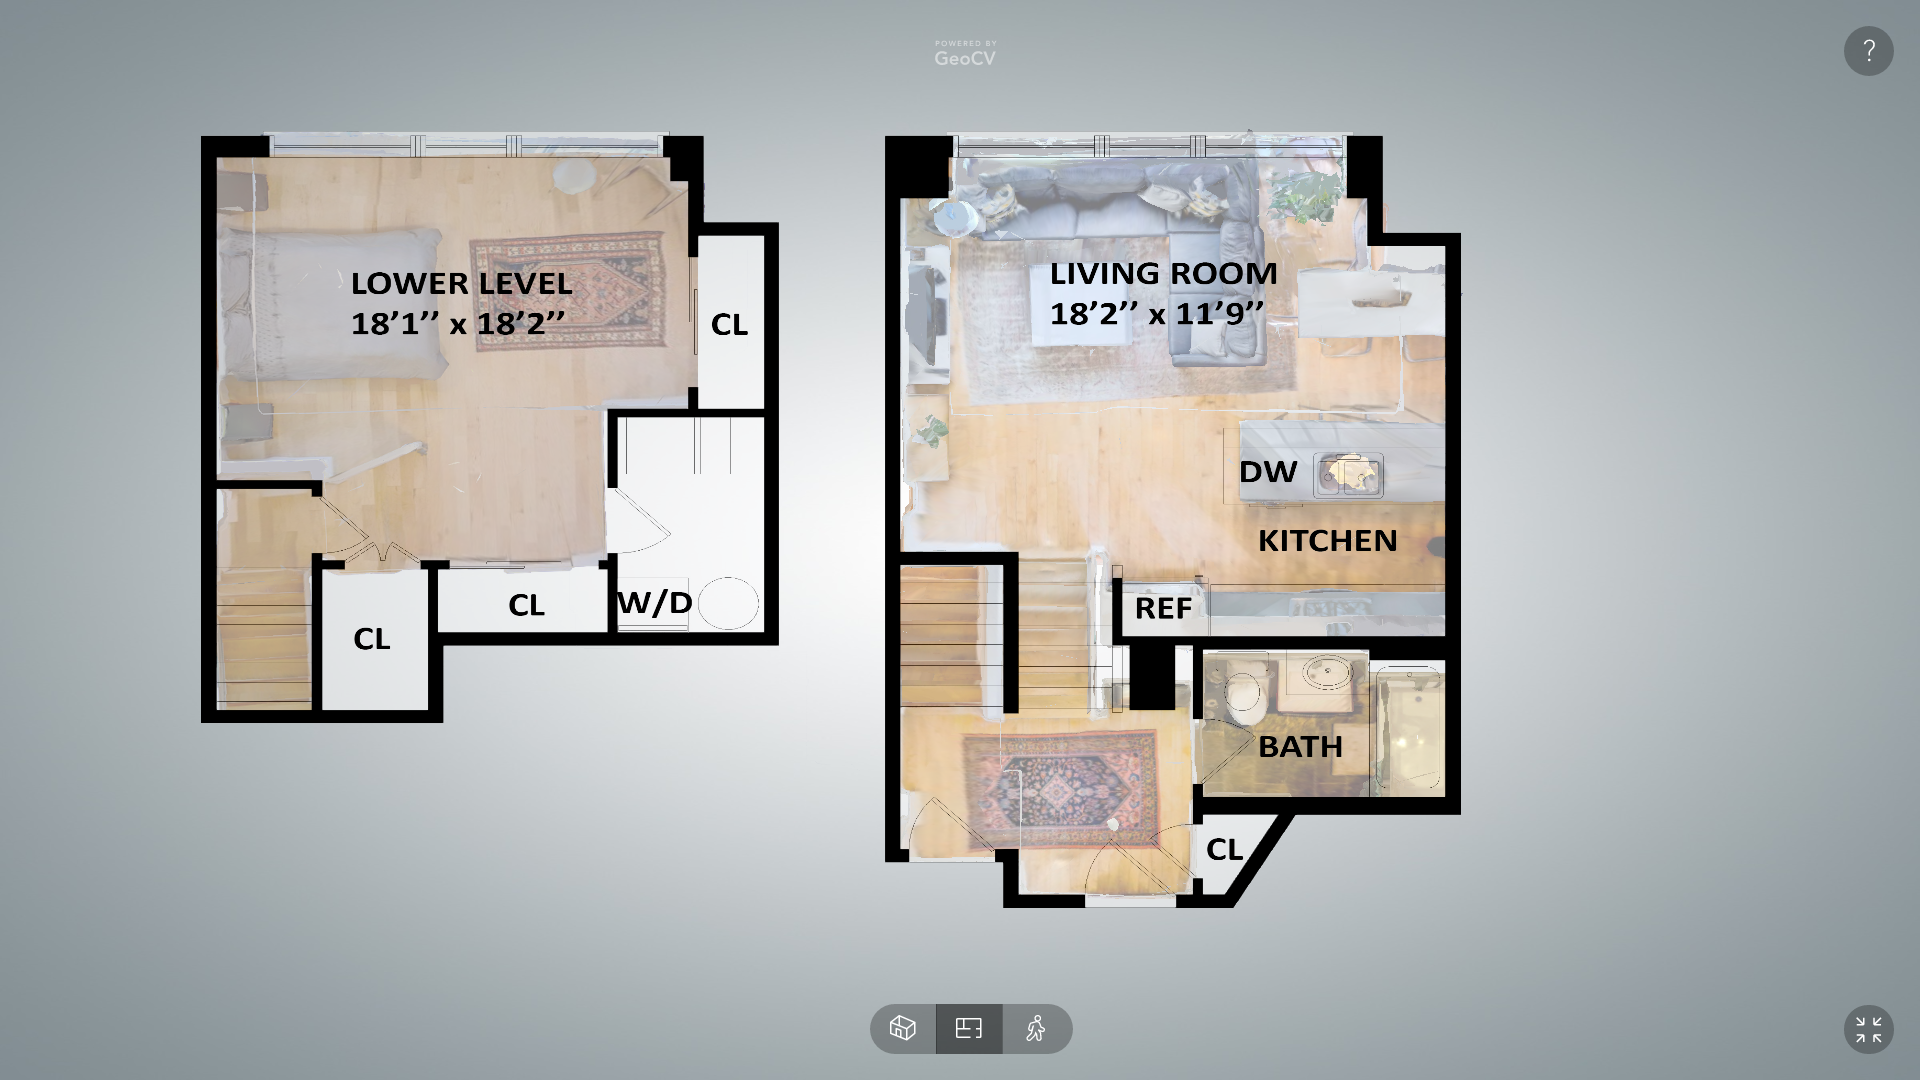 The software allows users to view a floorplan of a property. Image via GeoCV.